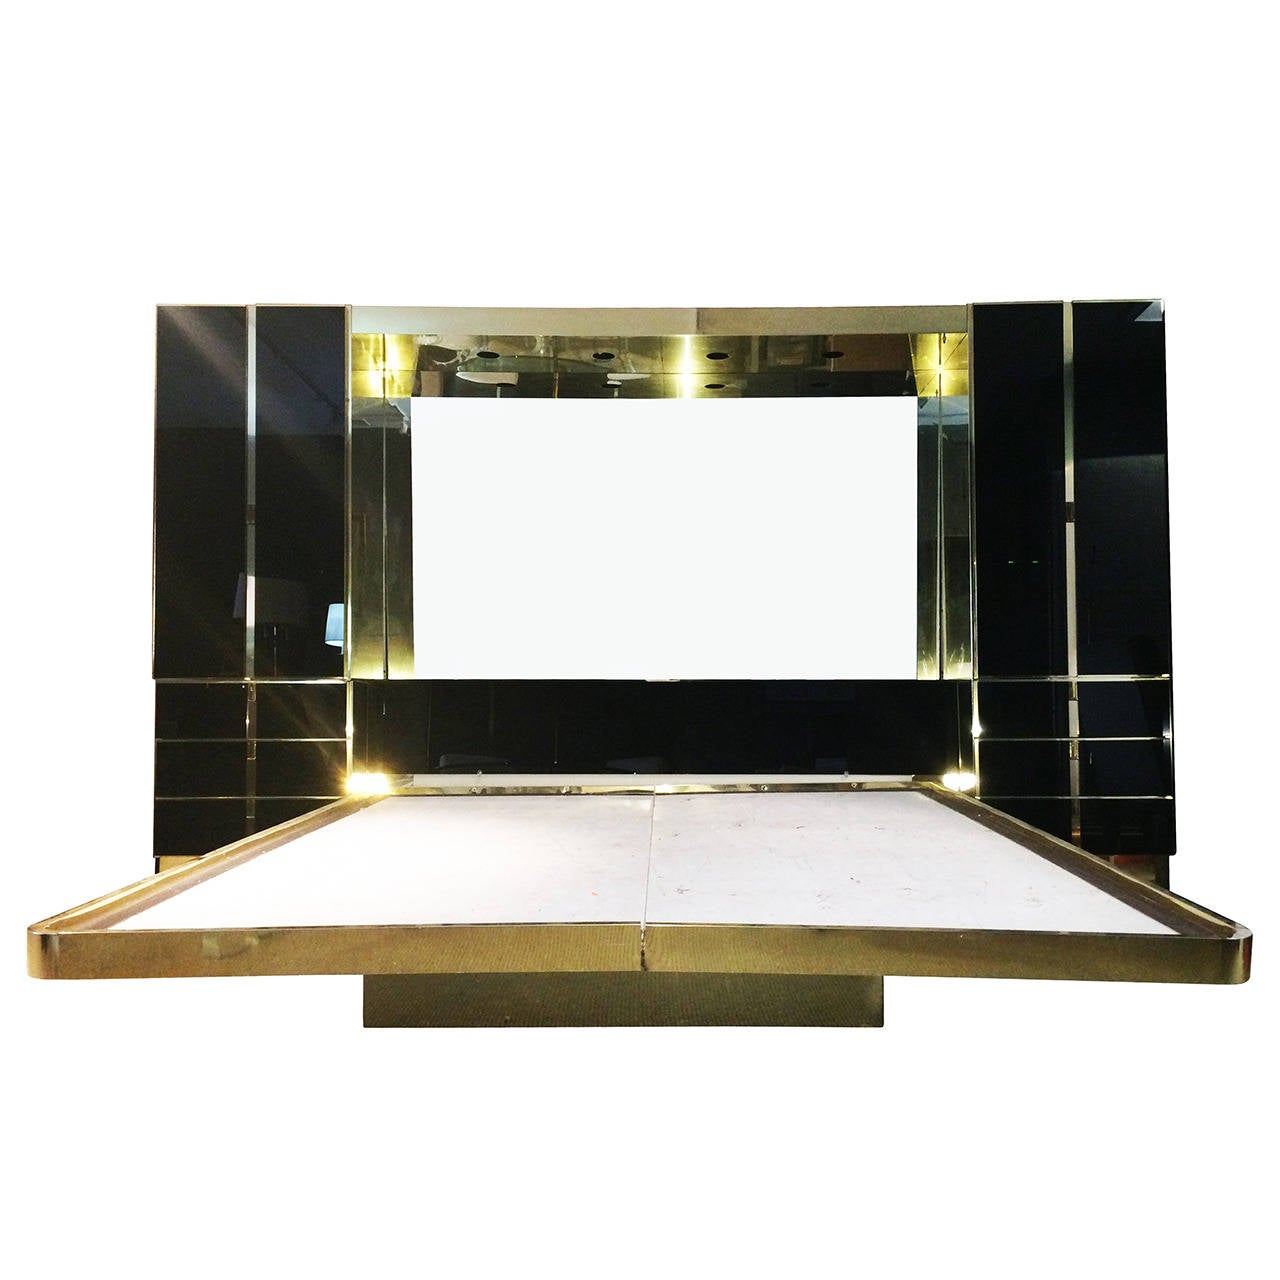 1970s King Size Bedroom Set In Brass And Black Mirrored Glass By Mastercraft At 1stdibs